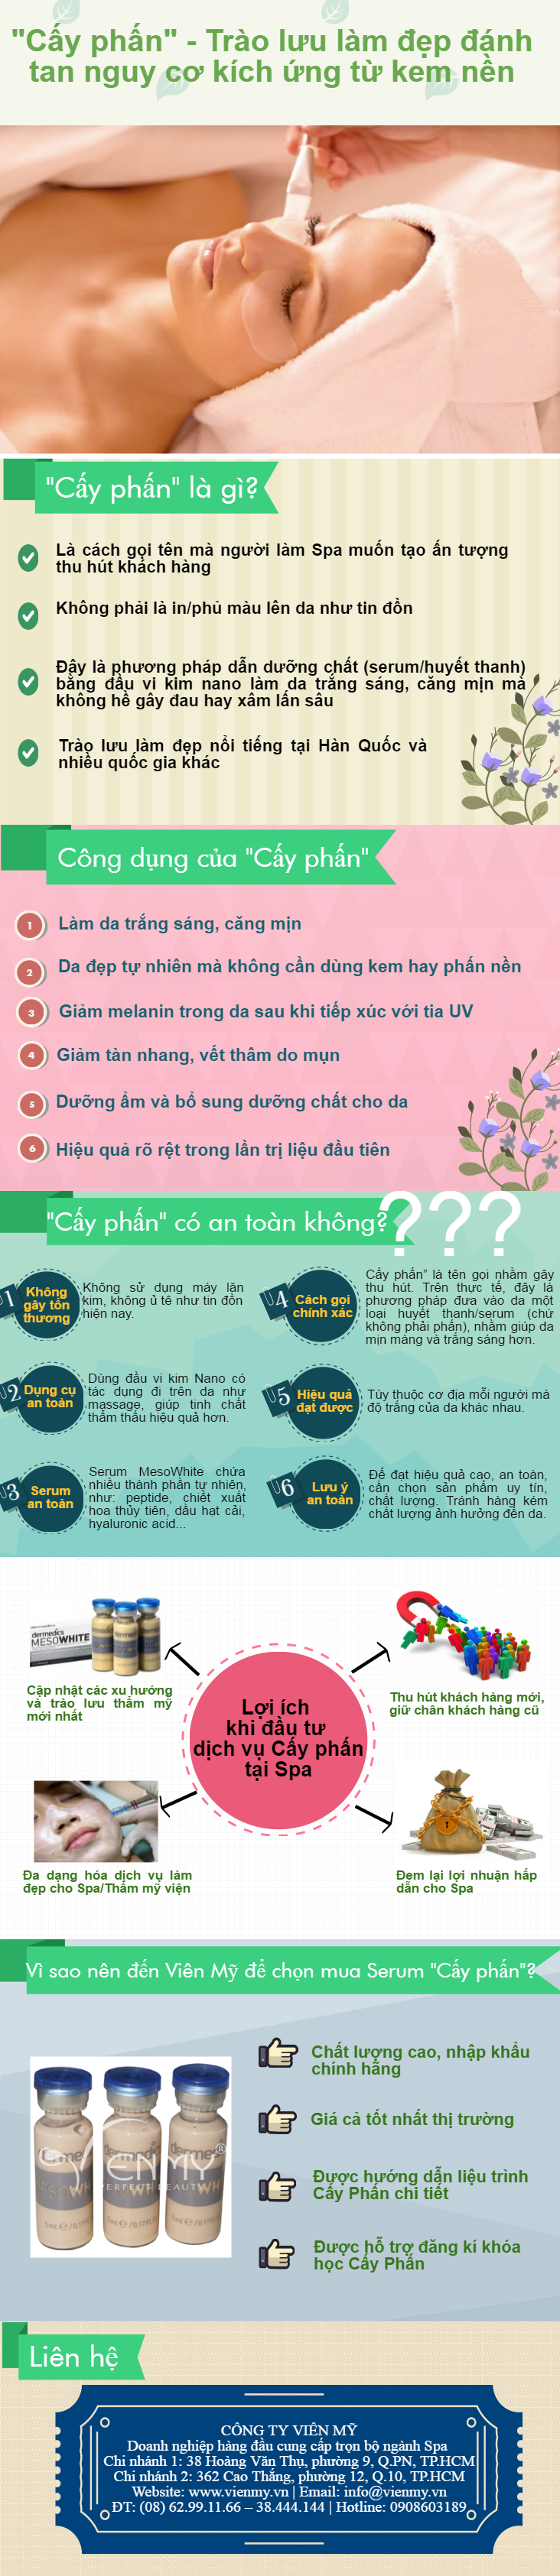 infographic-cay-phan